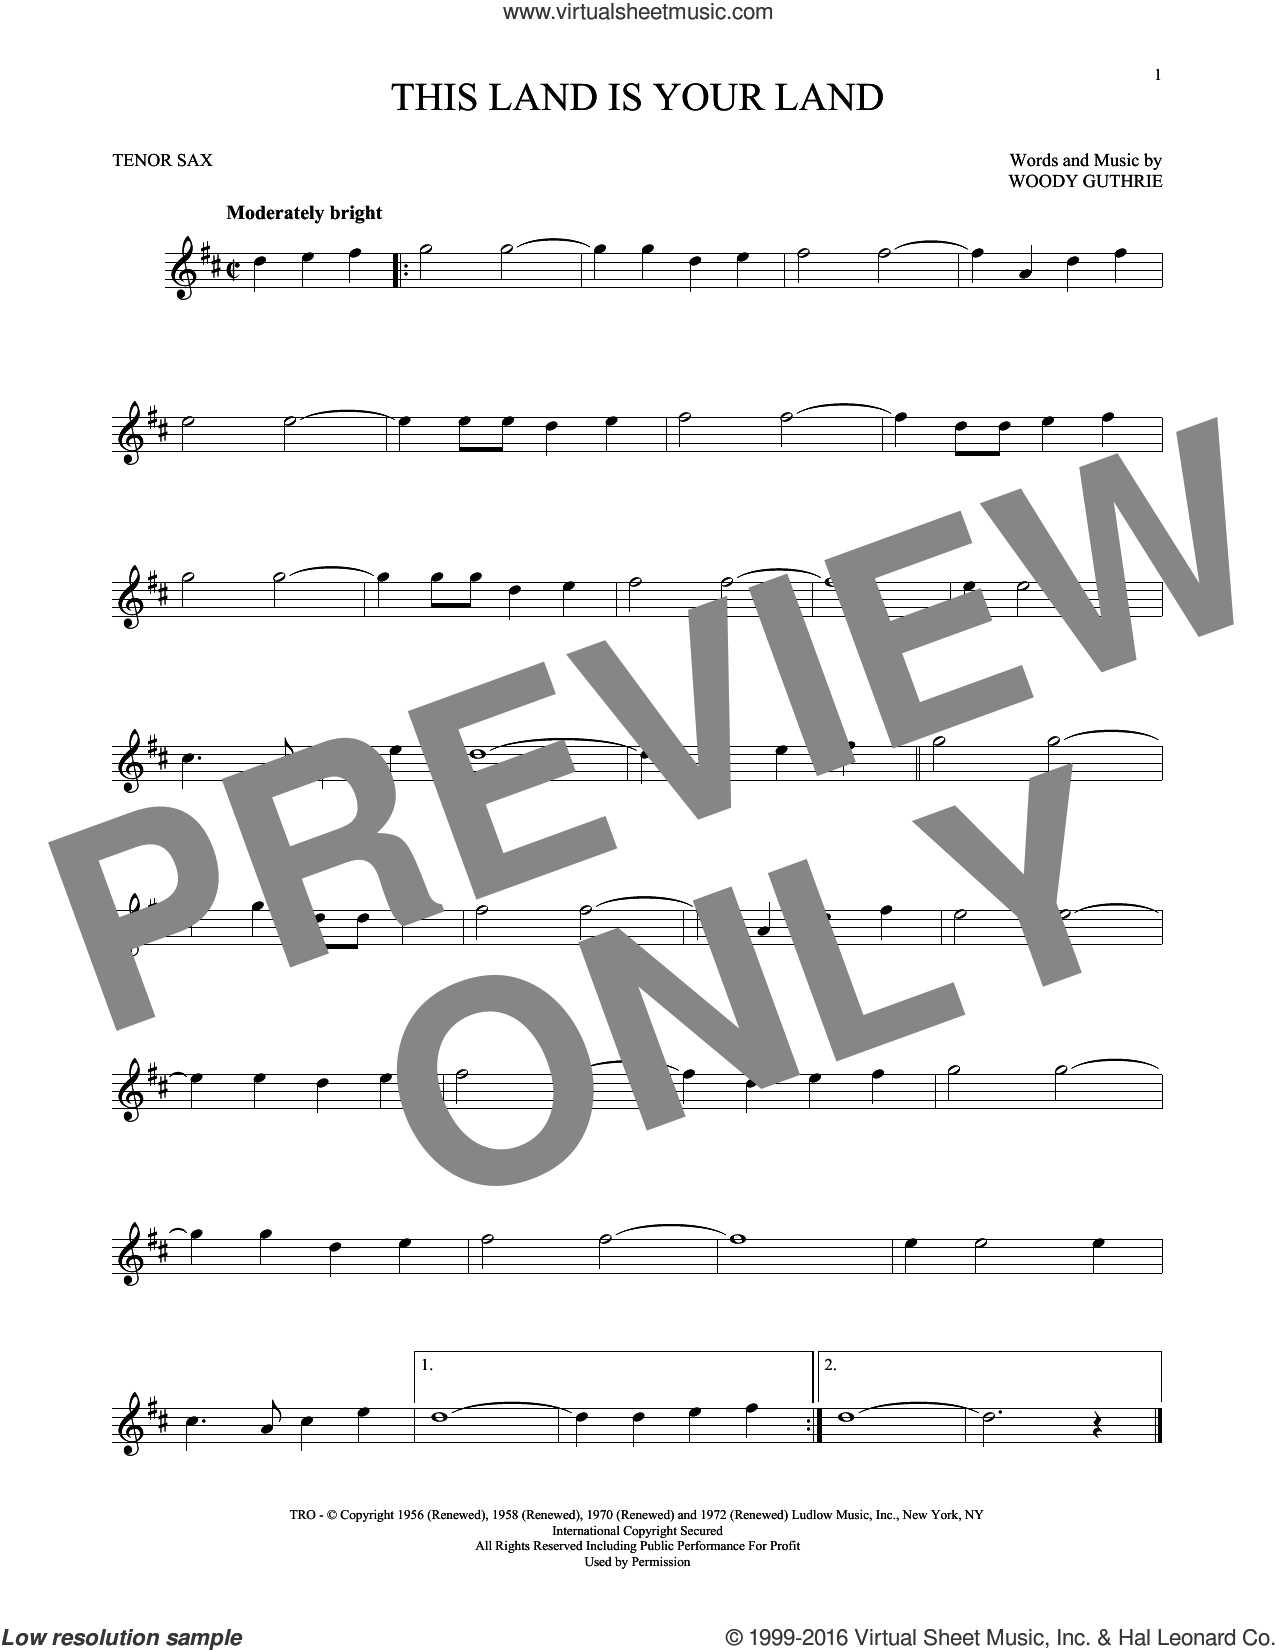 This Land Is Your Land sheet music for tenor saxophone solo by Woody Guthrie, intermediate skill level